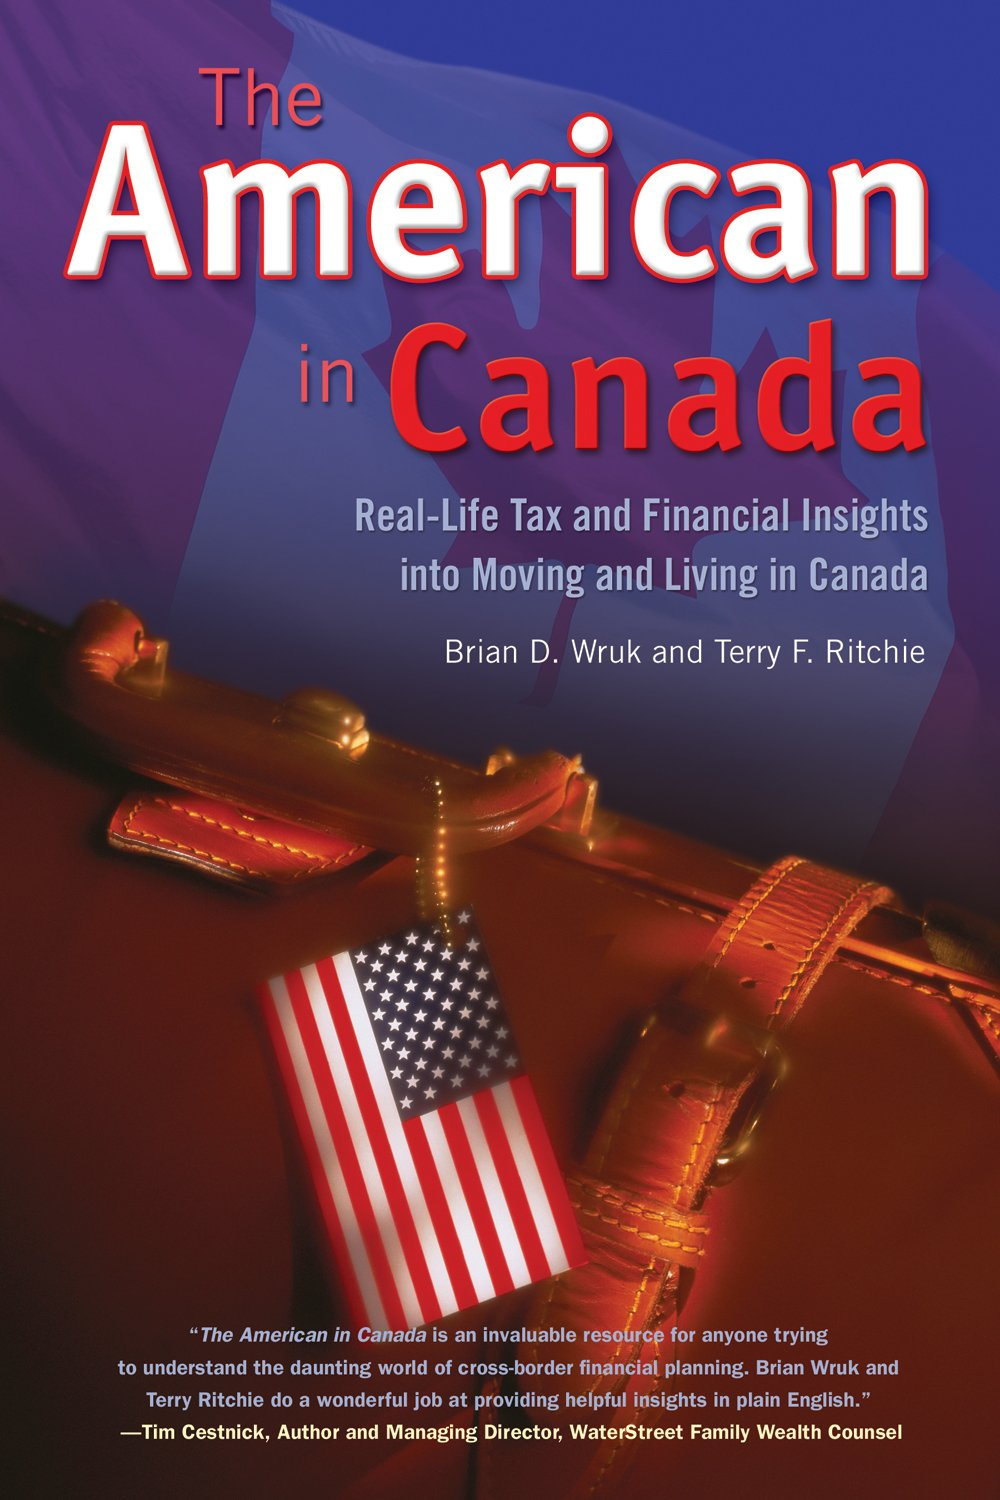 The American in Canada: Real-Life Tax and Financial Insights into Moving and Living in Canada